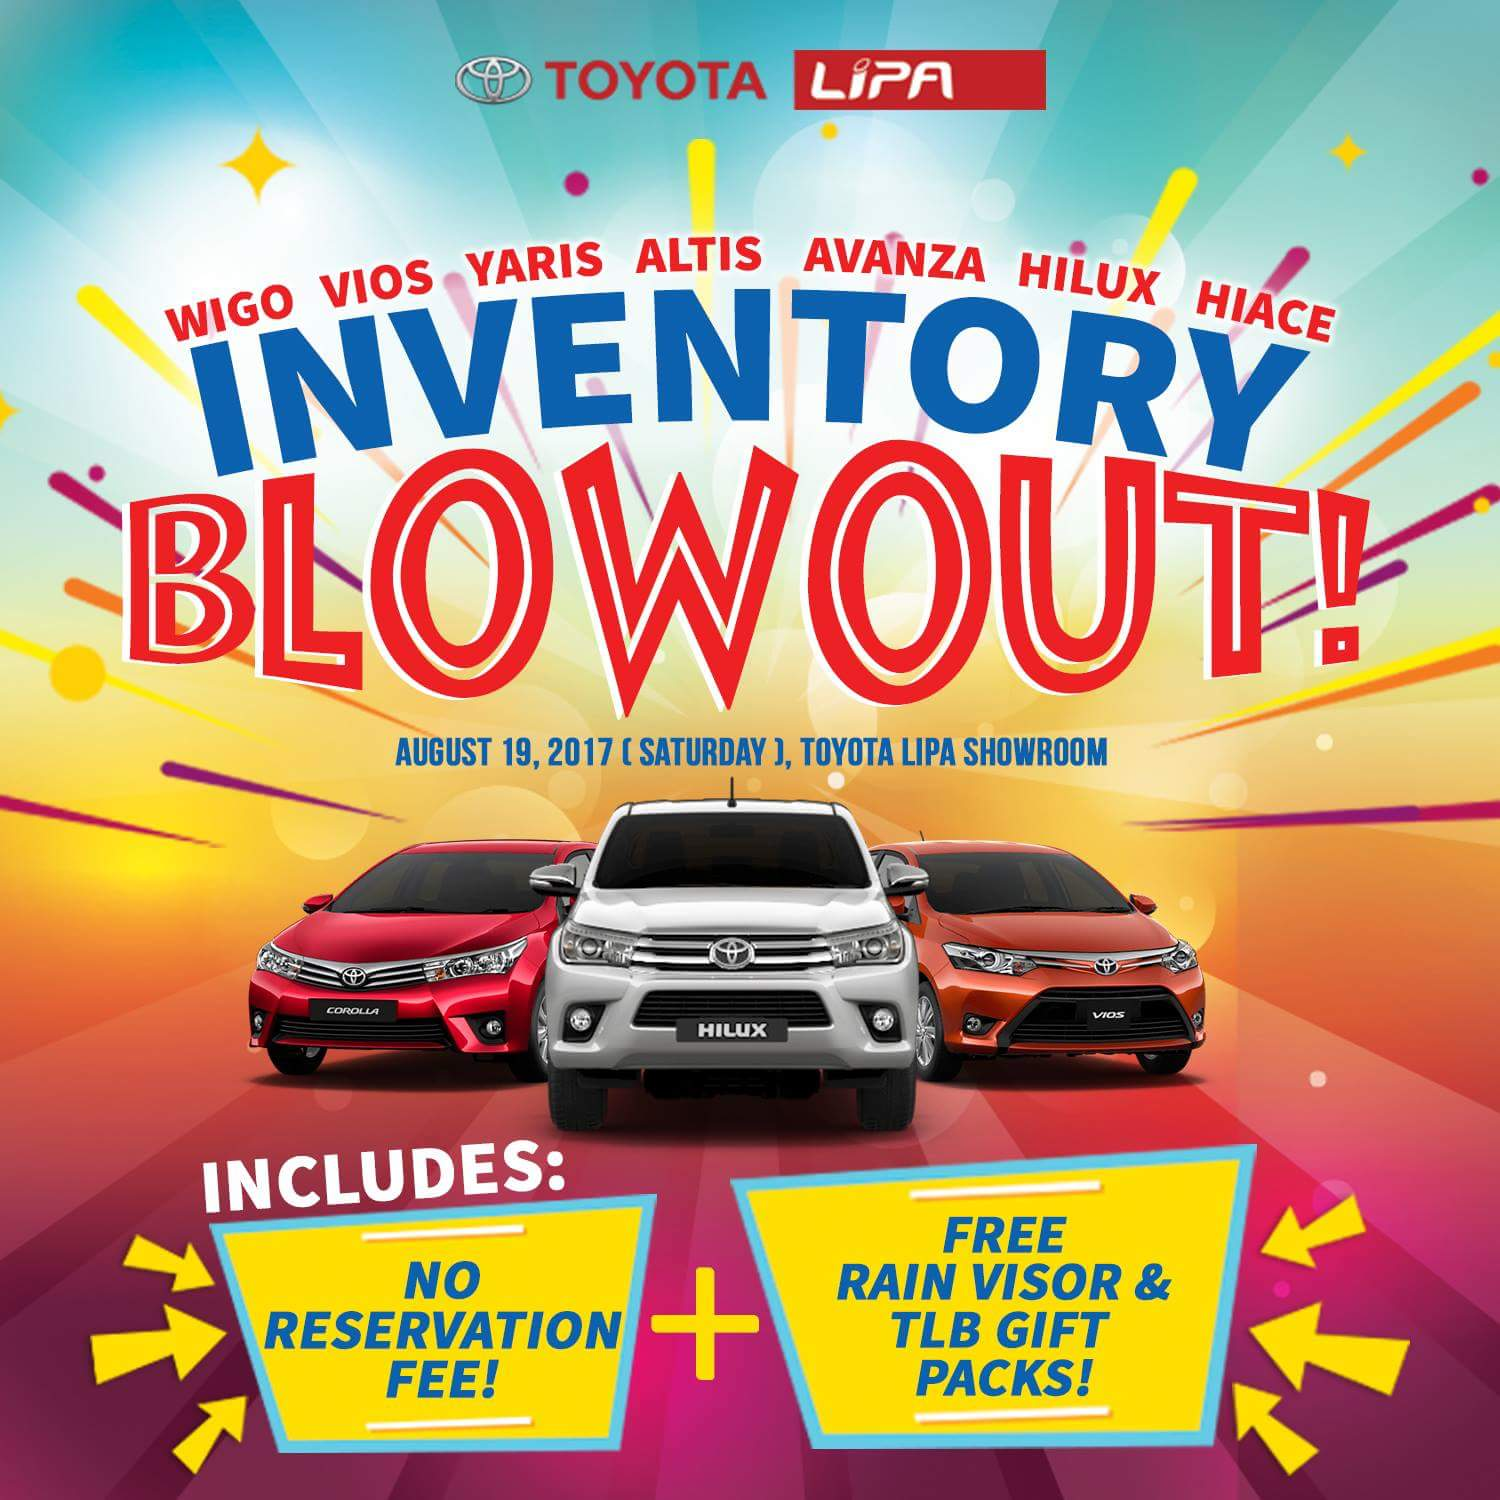 Turn that Dream Toyota into Reality this Saturday at the Toyota Lipa Inventory Blowout